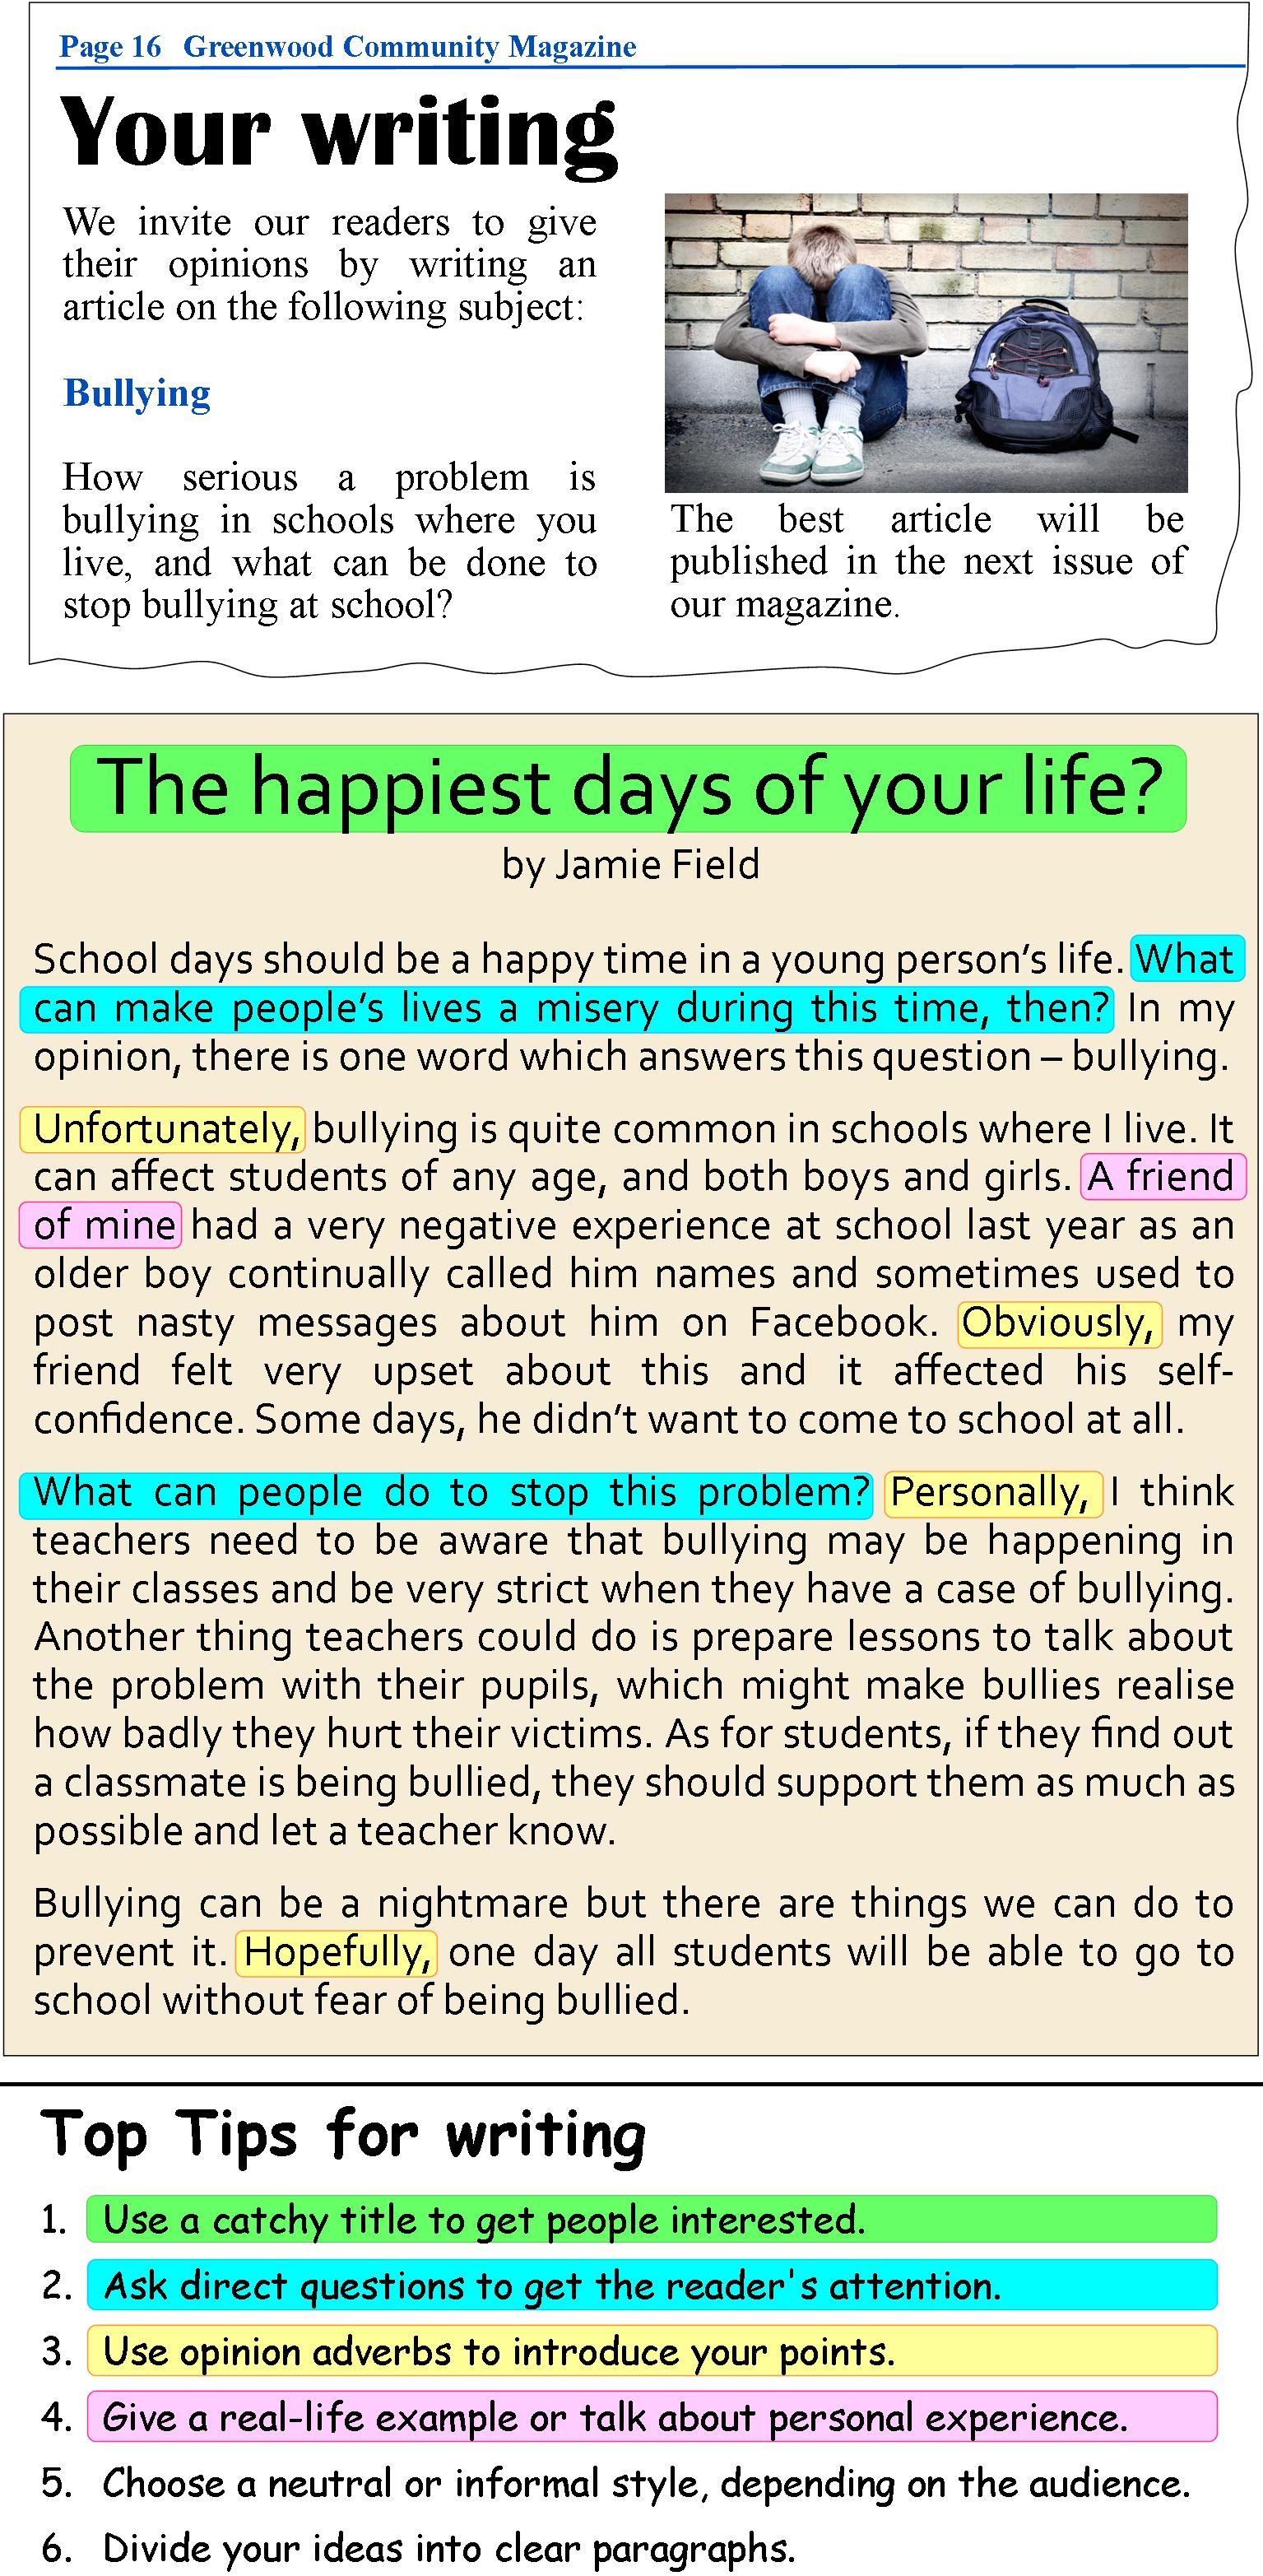 A Magazine Article Learnenglish Teens British Council